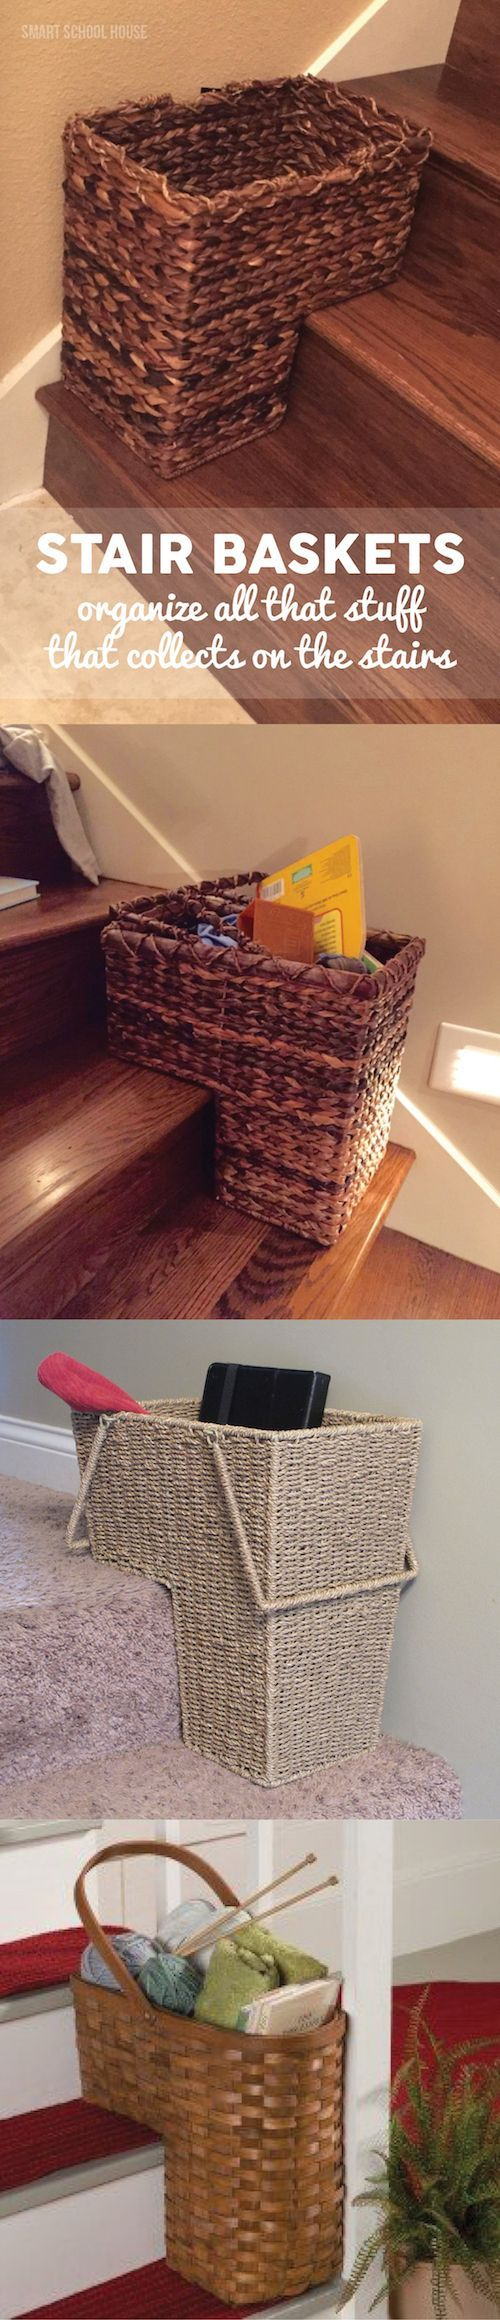 Stair Baskets! Use These To Organize All Of That Stuff That Collects On The  Stairs. Hereu0027s Where To Get Them!